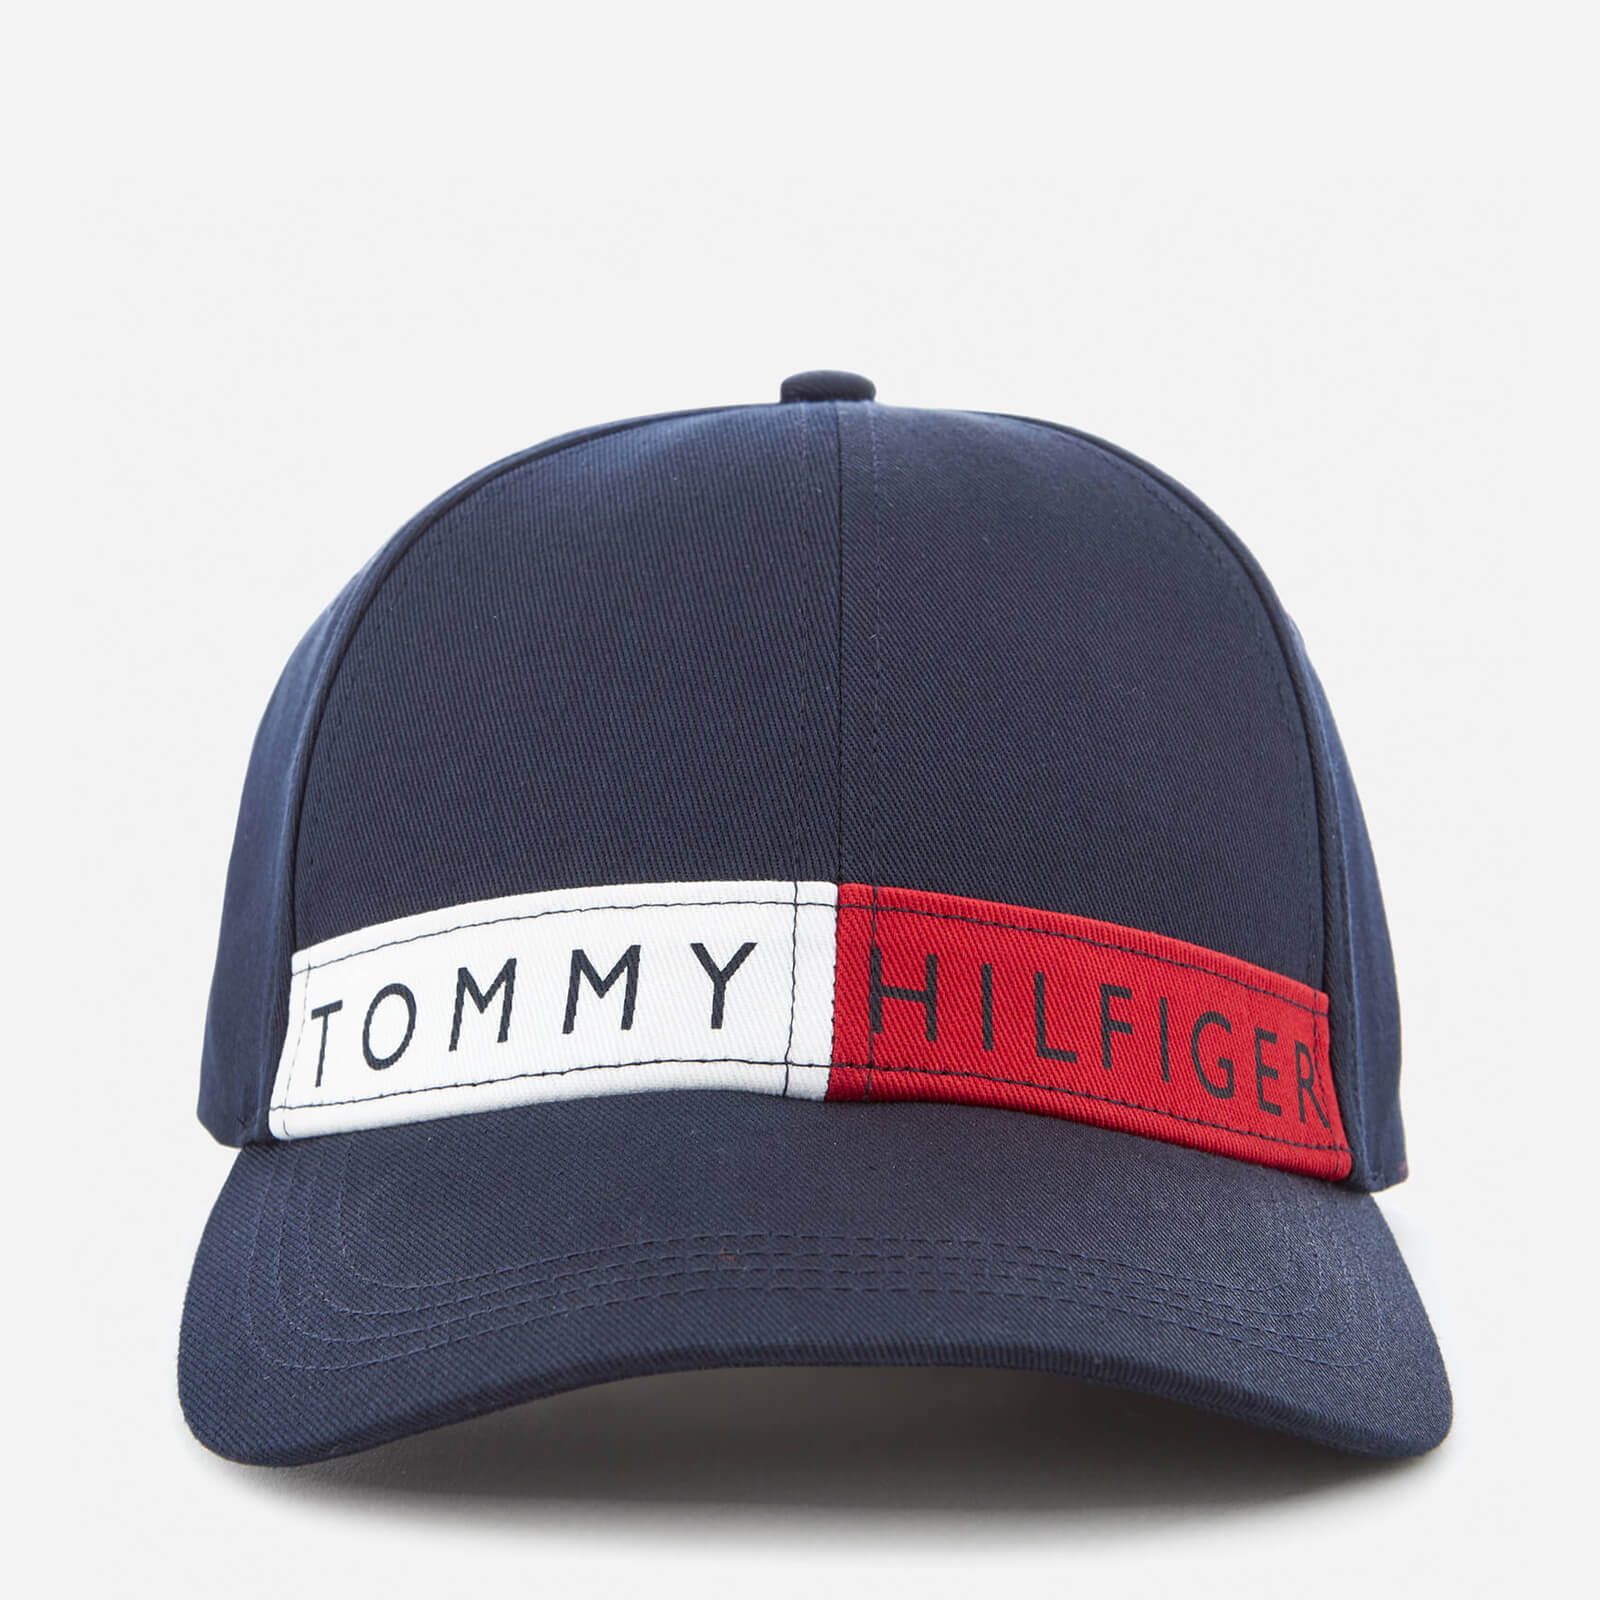 51544a7185cee Tommy Hilfiger Women s Logo Flag Cap - Navy Clothing